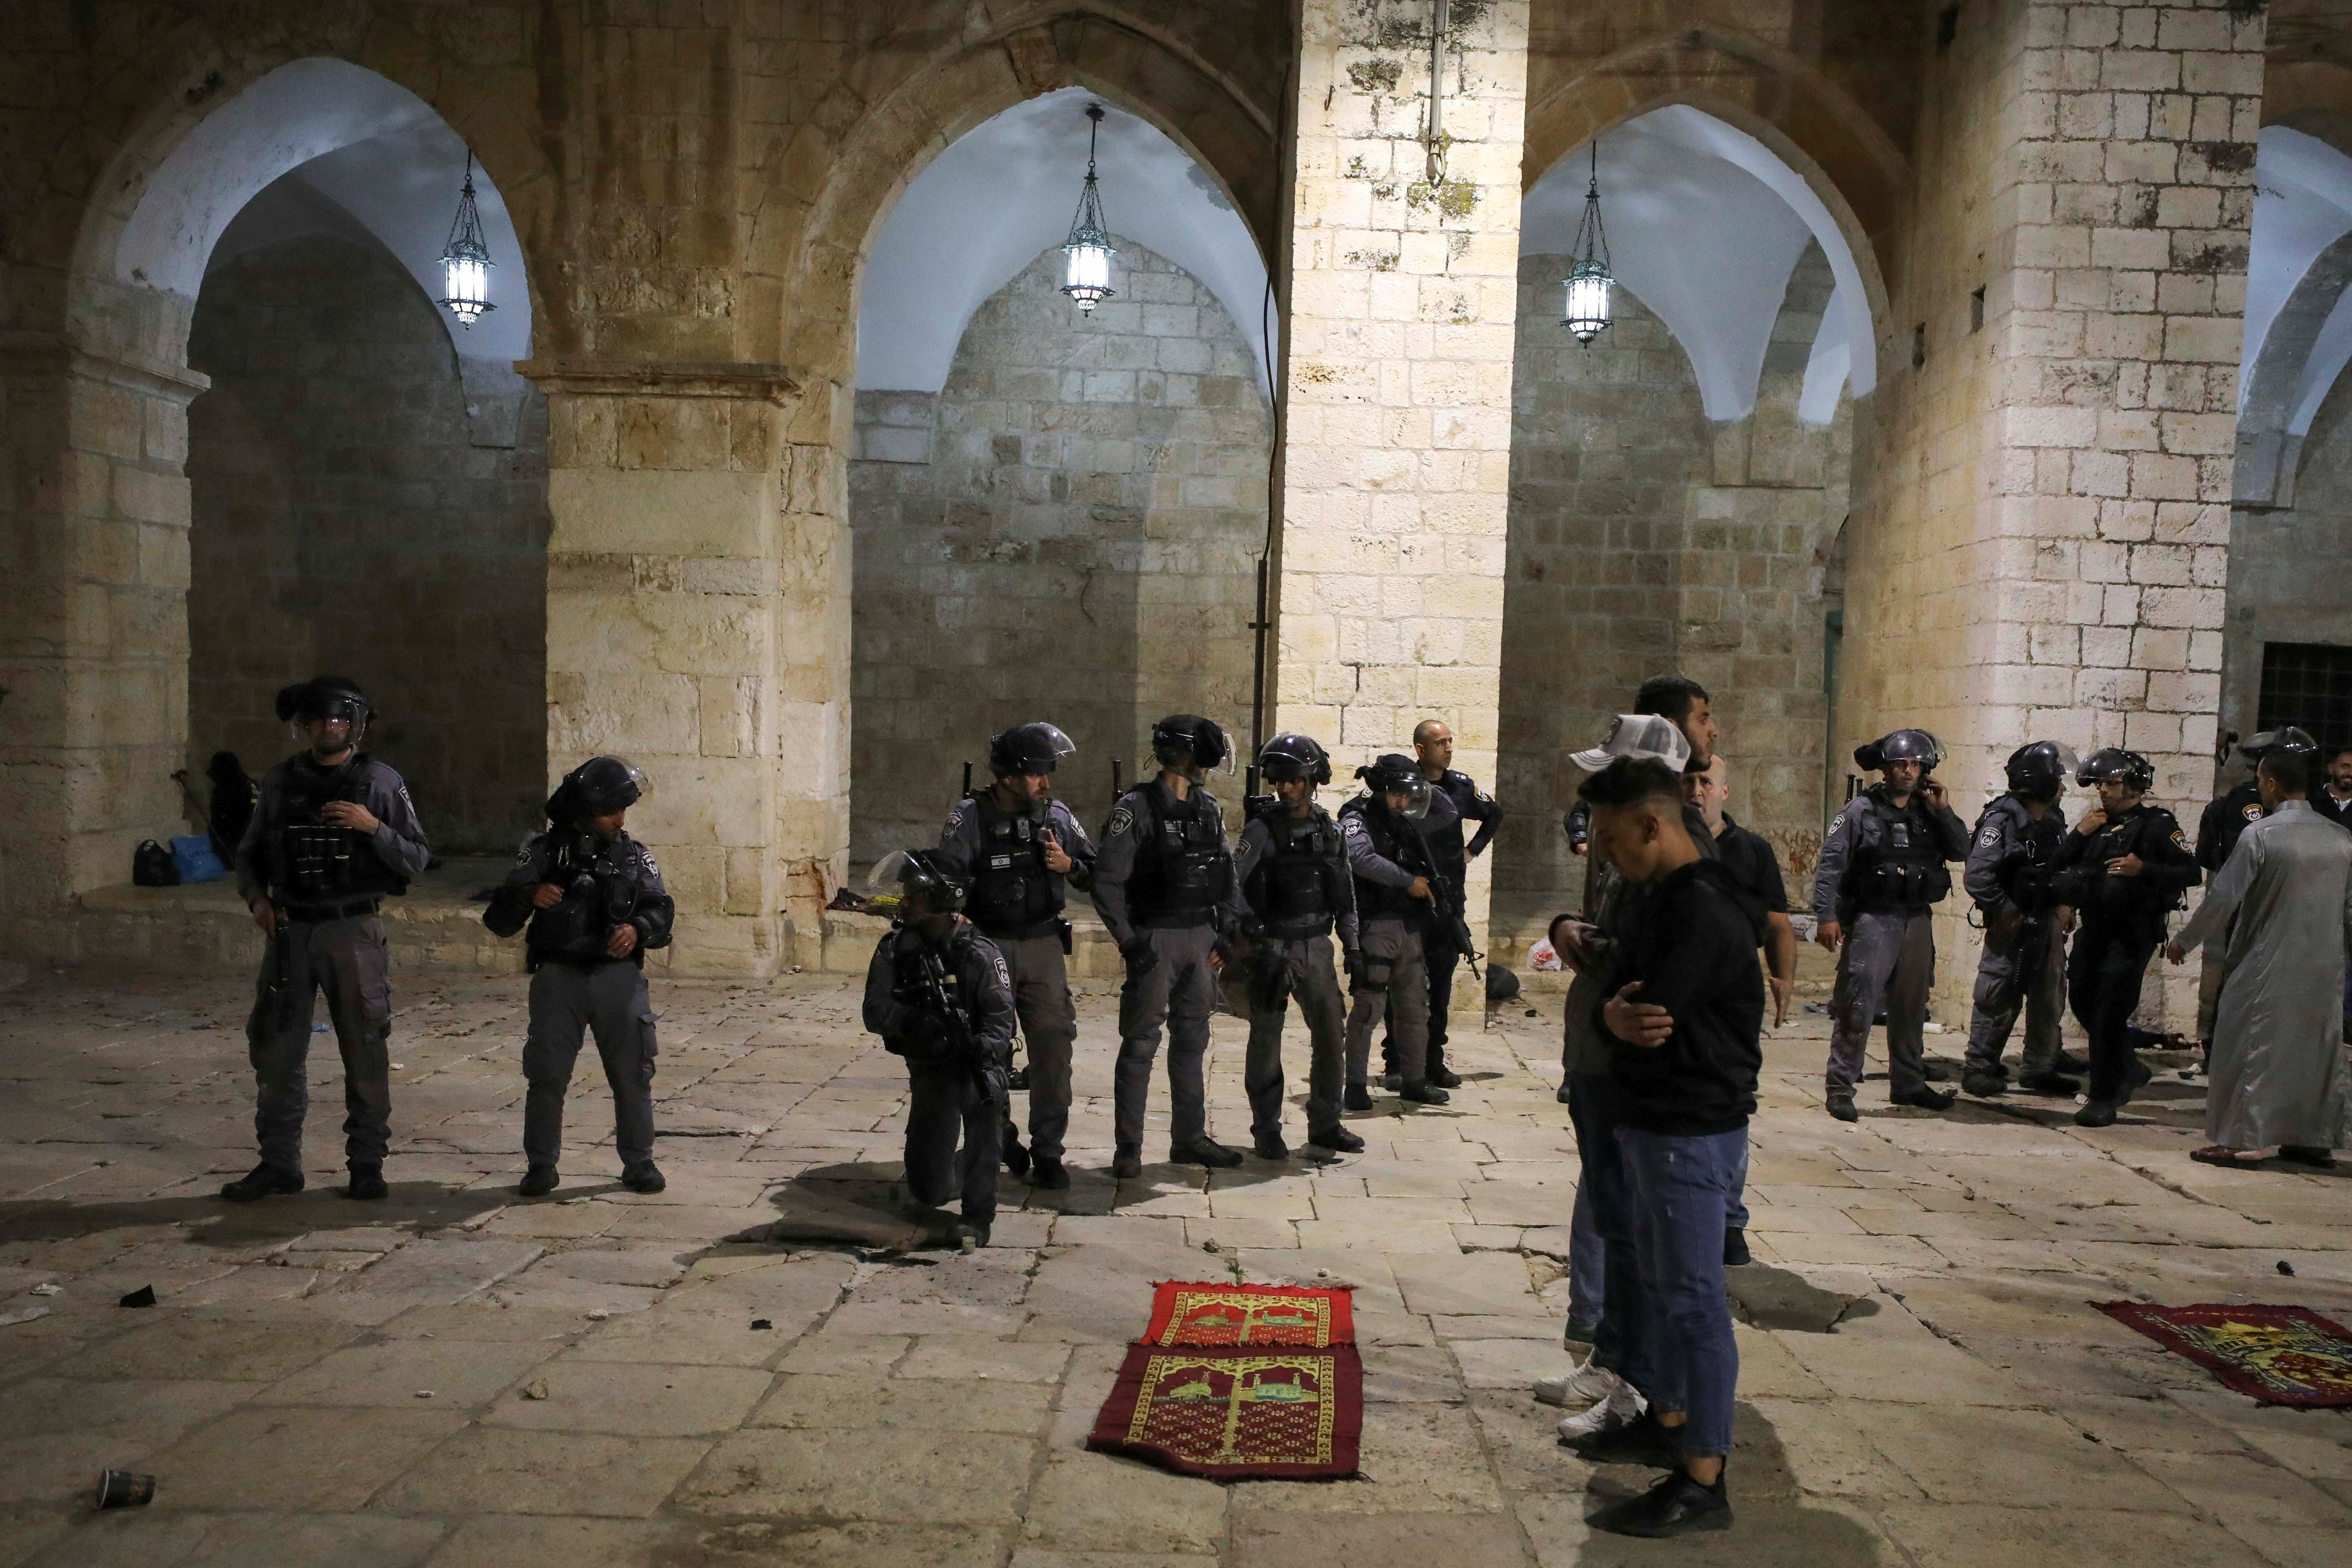 Palestinians pray as Israeli police gather during clashes at the compound that houses Al-Aqsa Mosque, known to Muslims as Noble Sanctuary and to Jews as Temple Mount, amid tension over the possible eviction of several Palestinian families from homes on land claimed by Jewish settlers in the Sheikh Jarrah neighbourhood, in Jerusalem's Old City, May 7, 2021. REUTERS/Ammar Awad